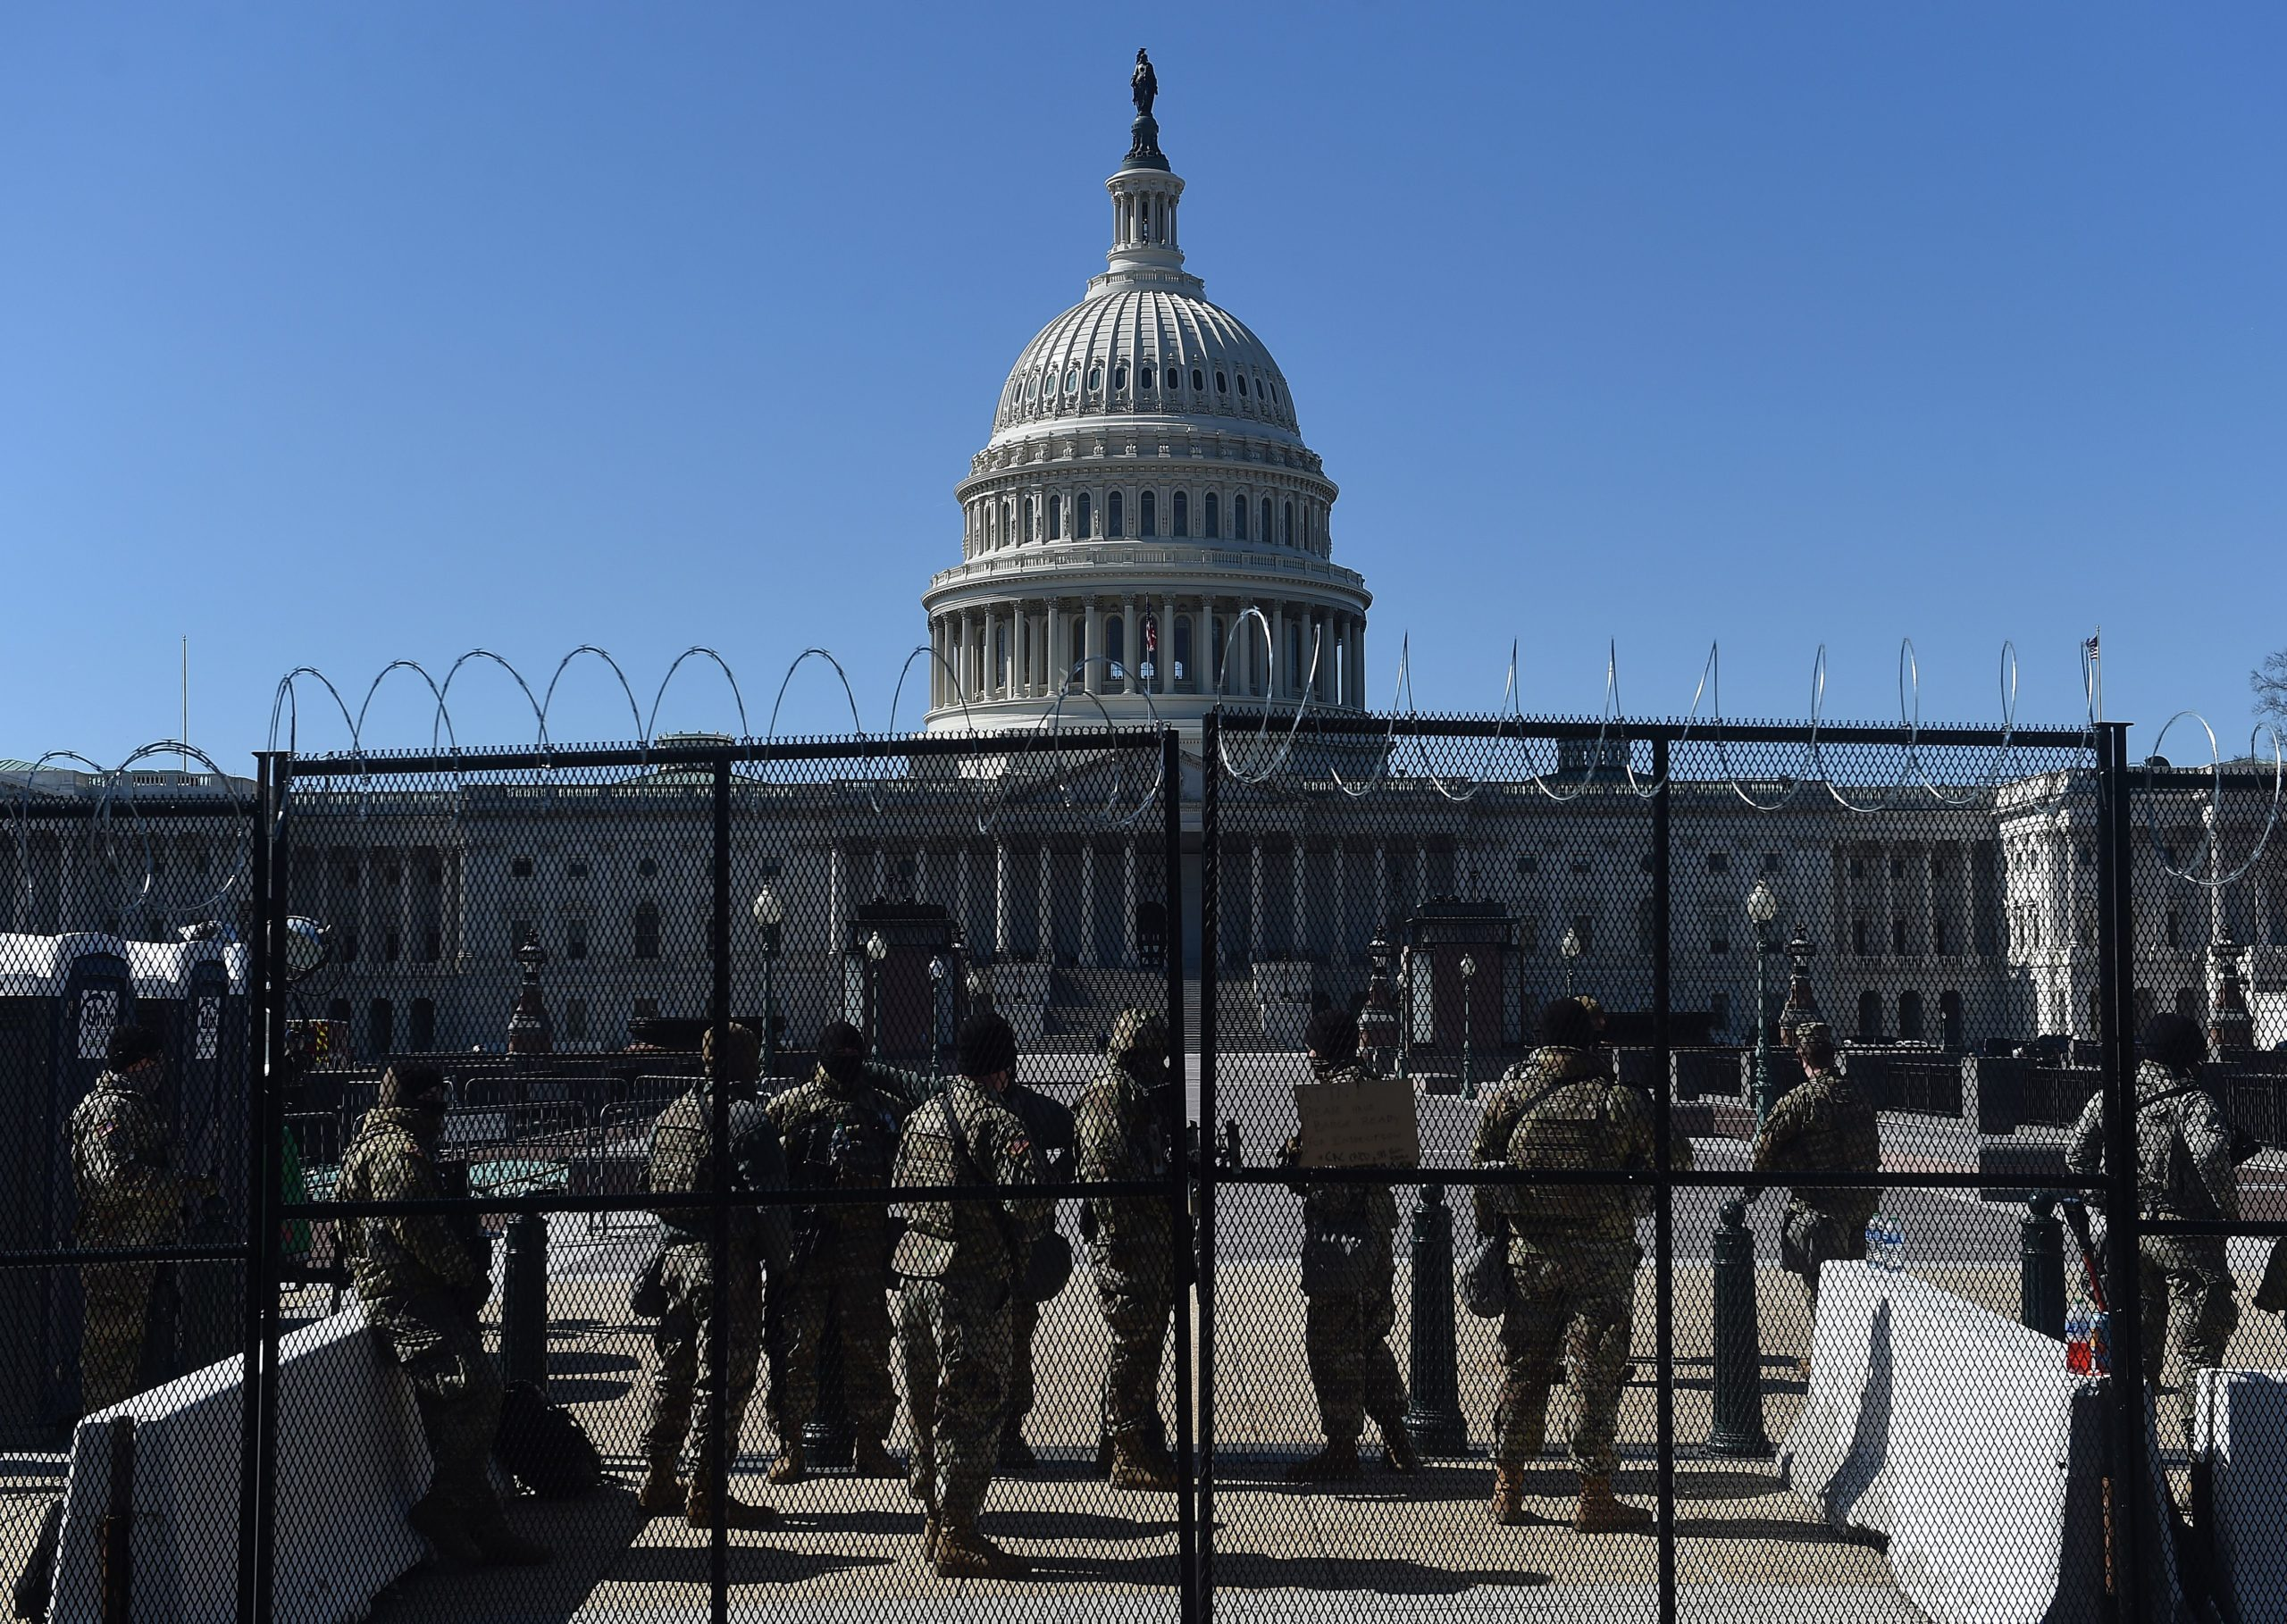 National Guard soldiers patrol outside the Capitol on March 5. (Olivier Douliery/AFP via Getty Images)